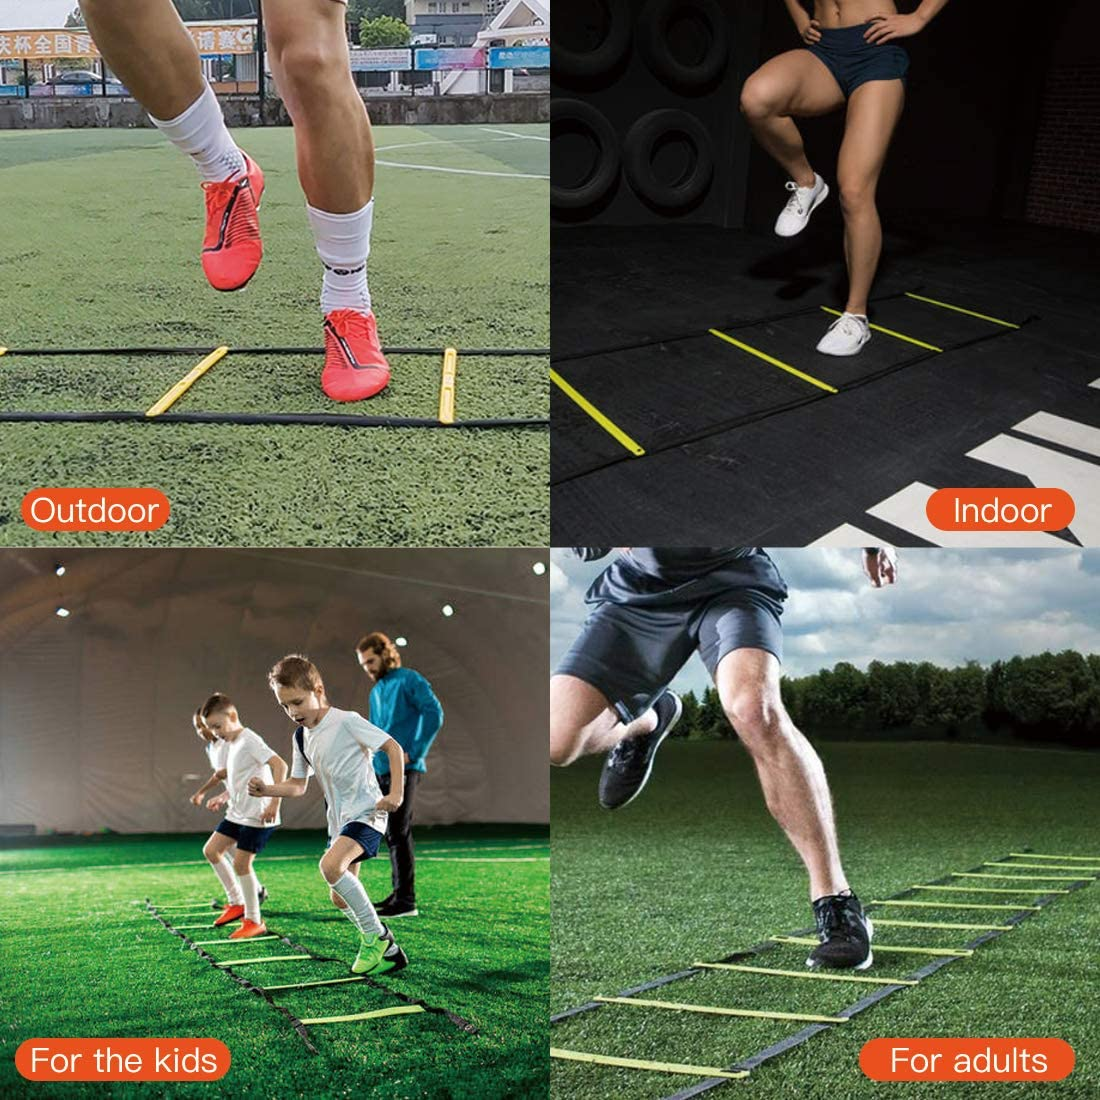 12 Rungs Agility Ladder,12 Disc Cones Agility Training Equipment Adjustable Speed Ladder for Soccer Speed Football Fitness Feet and Home Workouts Training with Free 5ft Resistance Band and Carry Bag